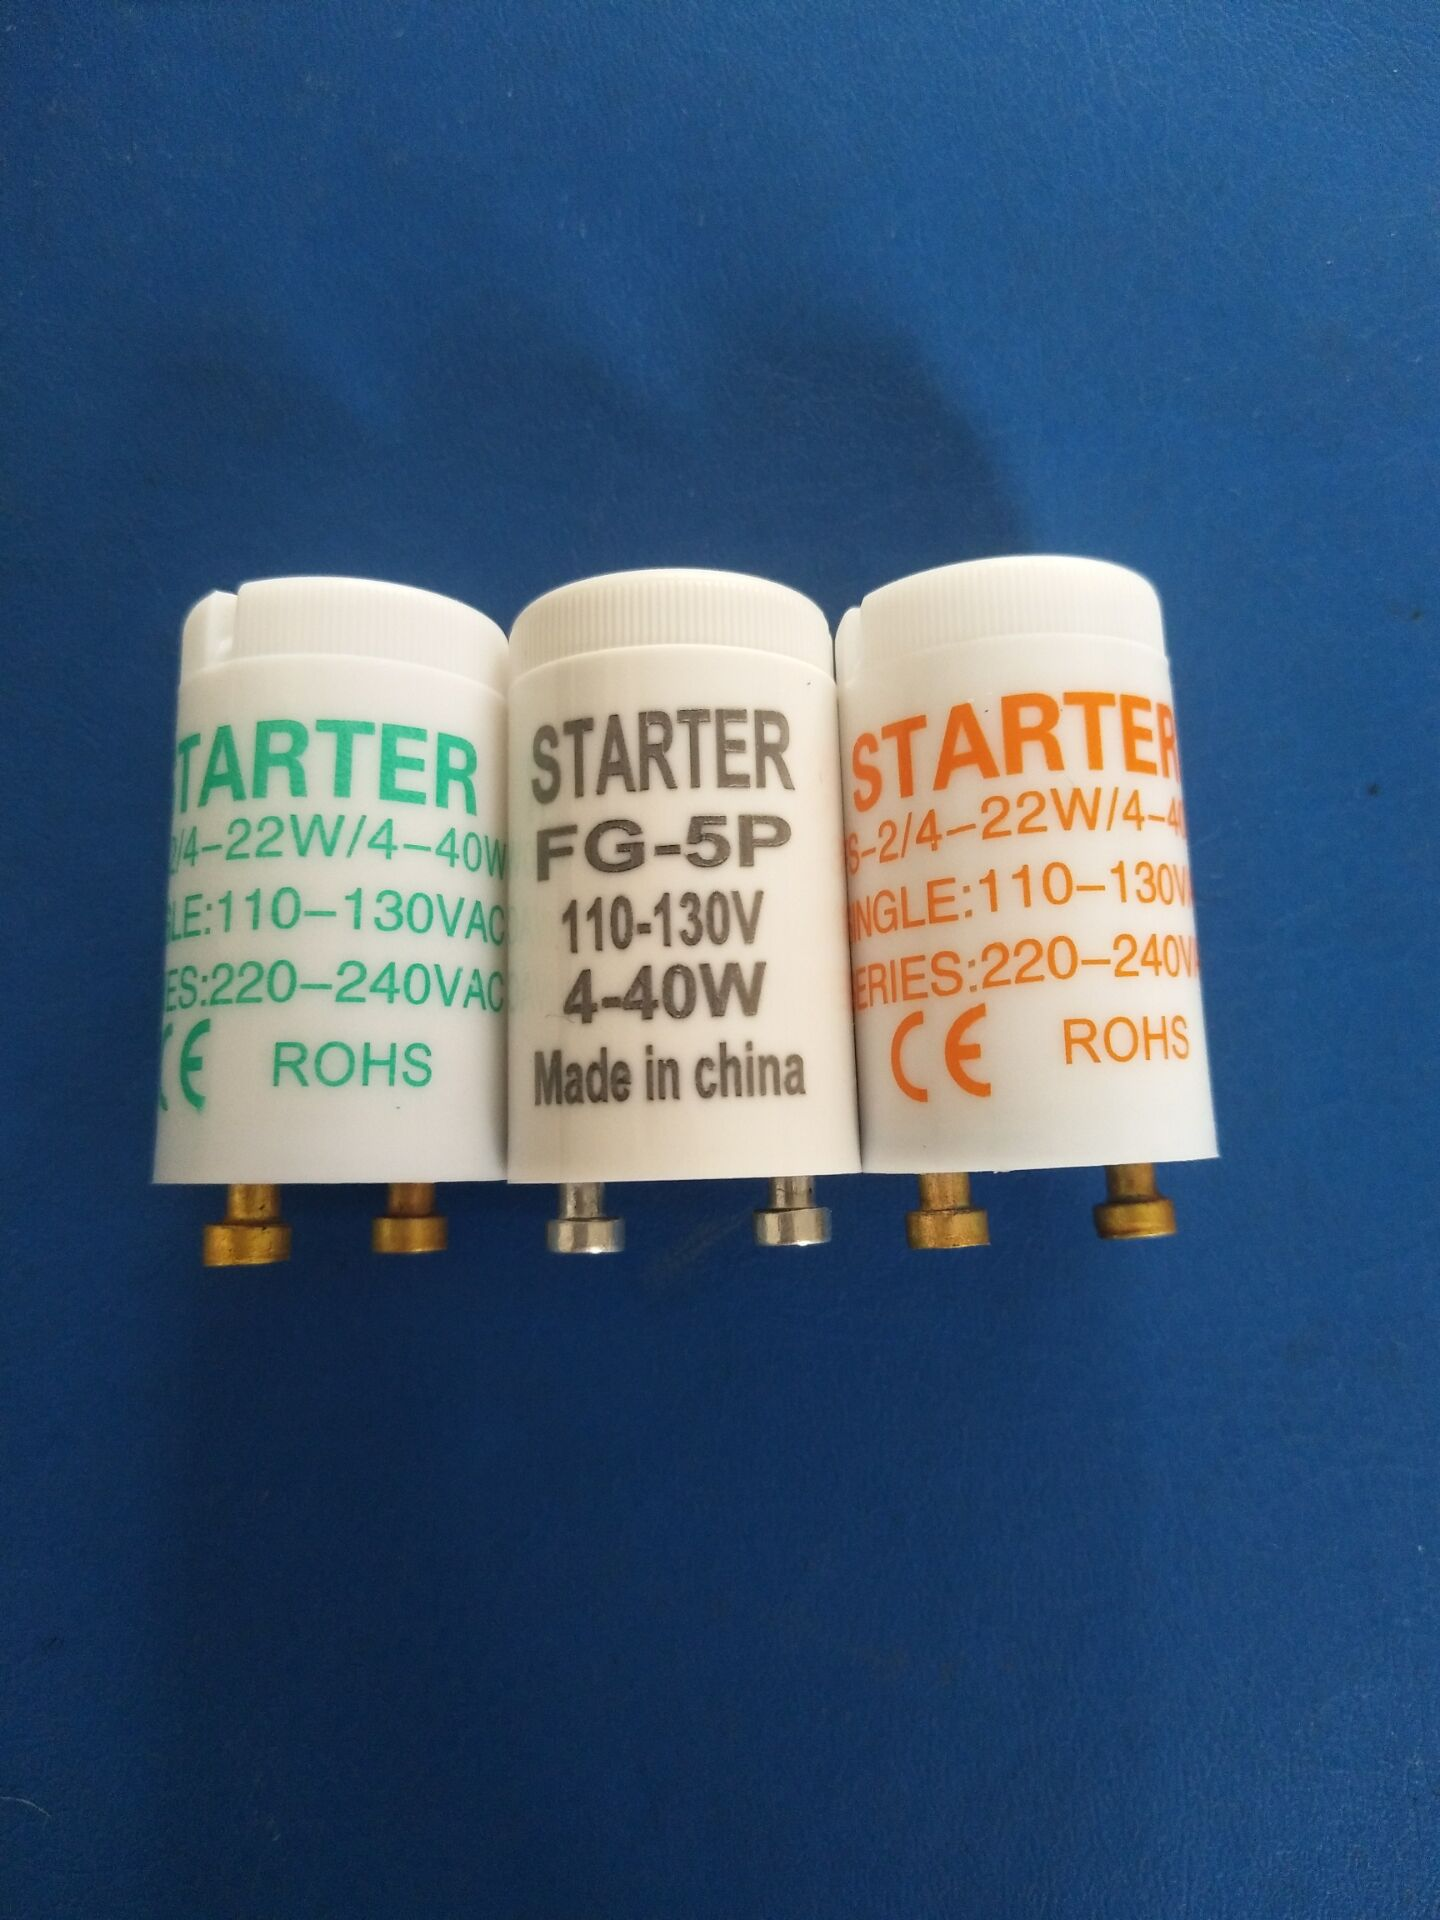 25pcs/lot Fuse Starter FG-5P  For 4-40W 110-130VAC Mosquito Lamp Fuse Starter FG-5P For Mosquito Lamps 4-40W CE ROHS